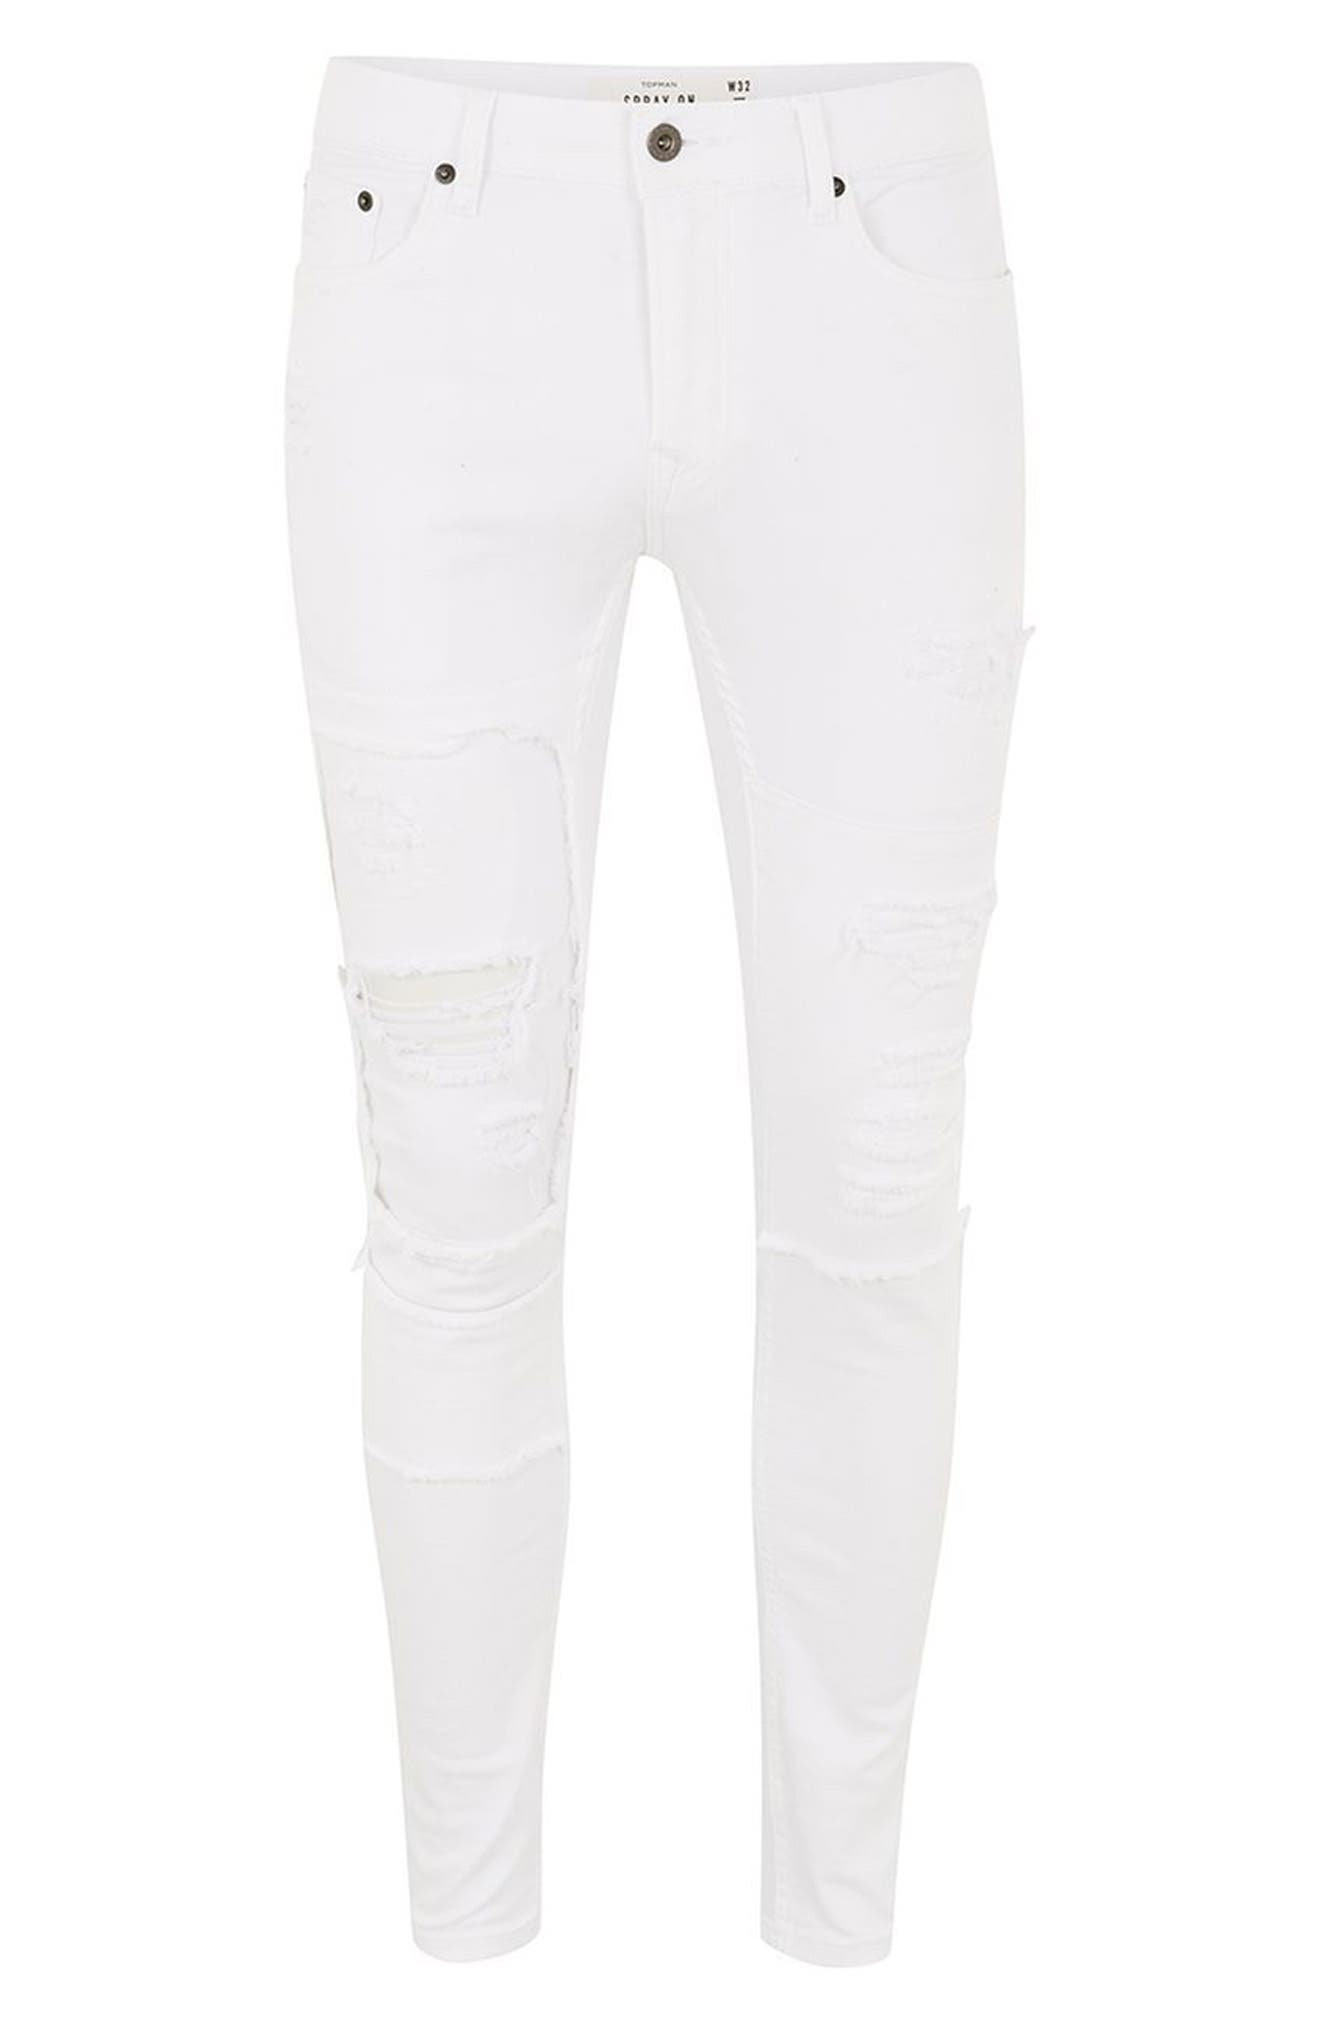 TOPMAN,                             Spray-On Skinny Fit Ripped Jeans,                             Alternate thumbnail 4, color,                             100